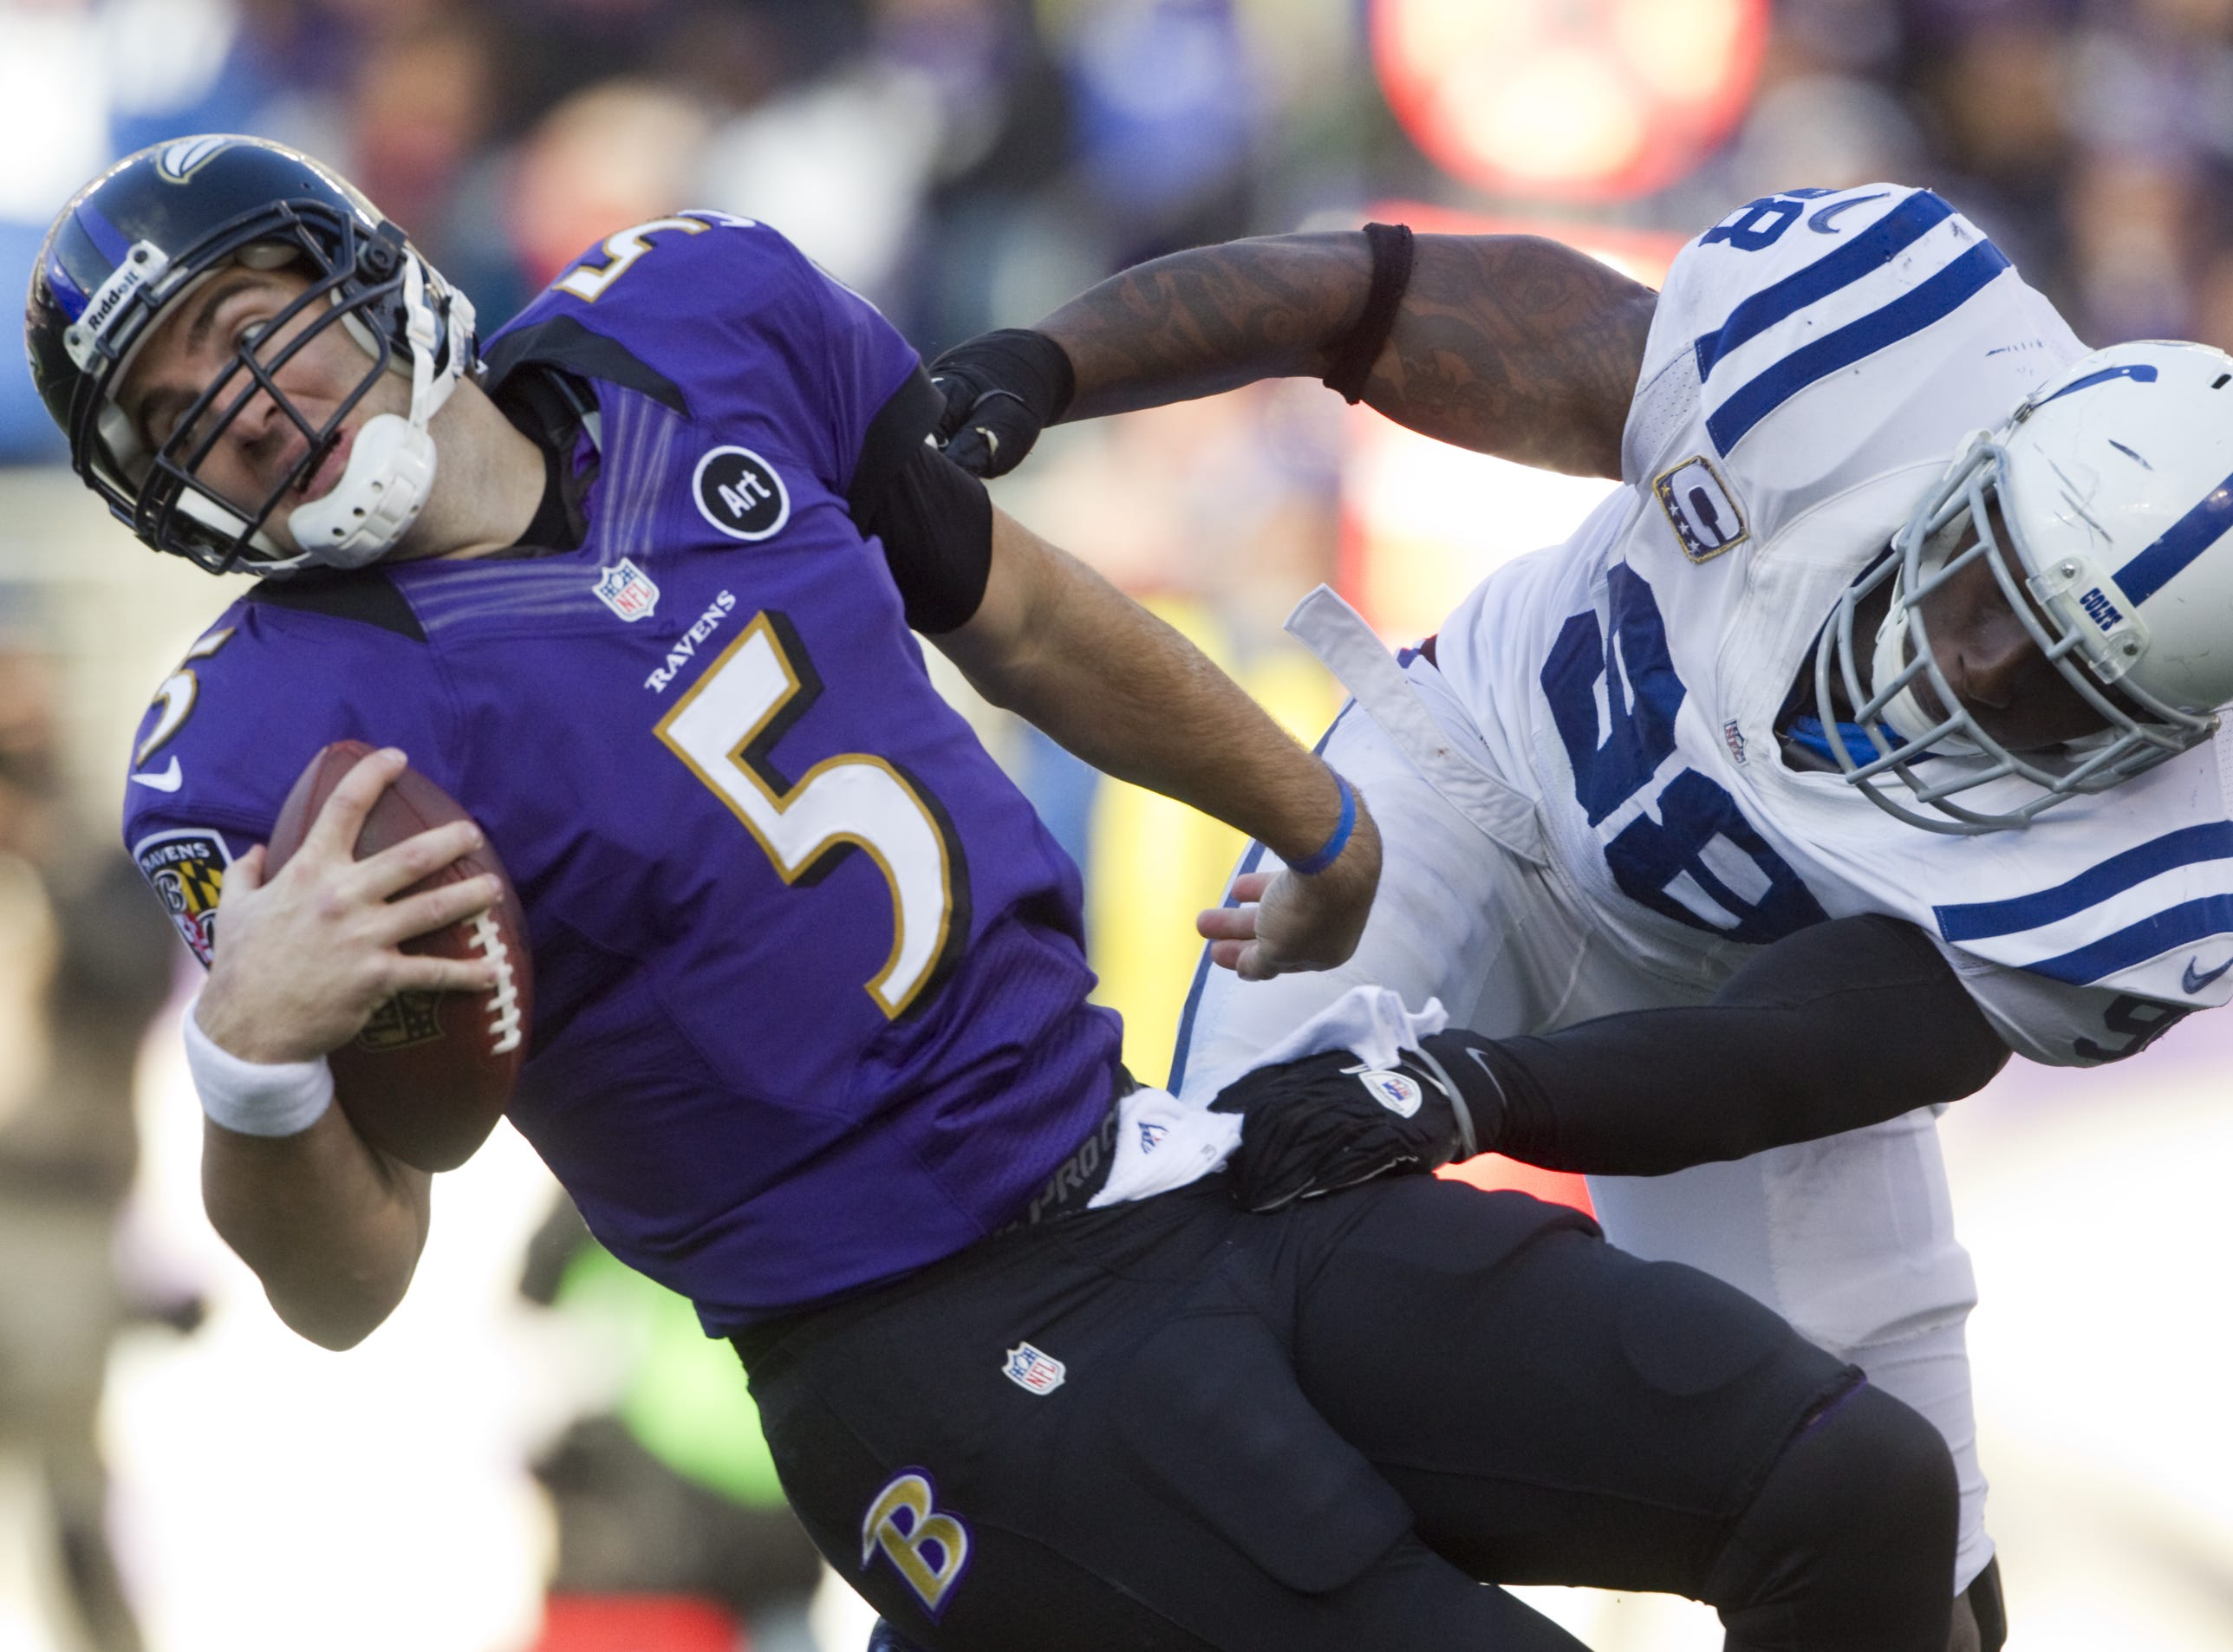 Baltimore Ravens quarterback Joe Flacco is sacked by Indianapolis Colts Robert Mathis at M&T Bank Stadium, Baltimore, MD, Sunday, January 06, 2013.